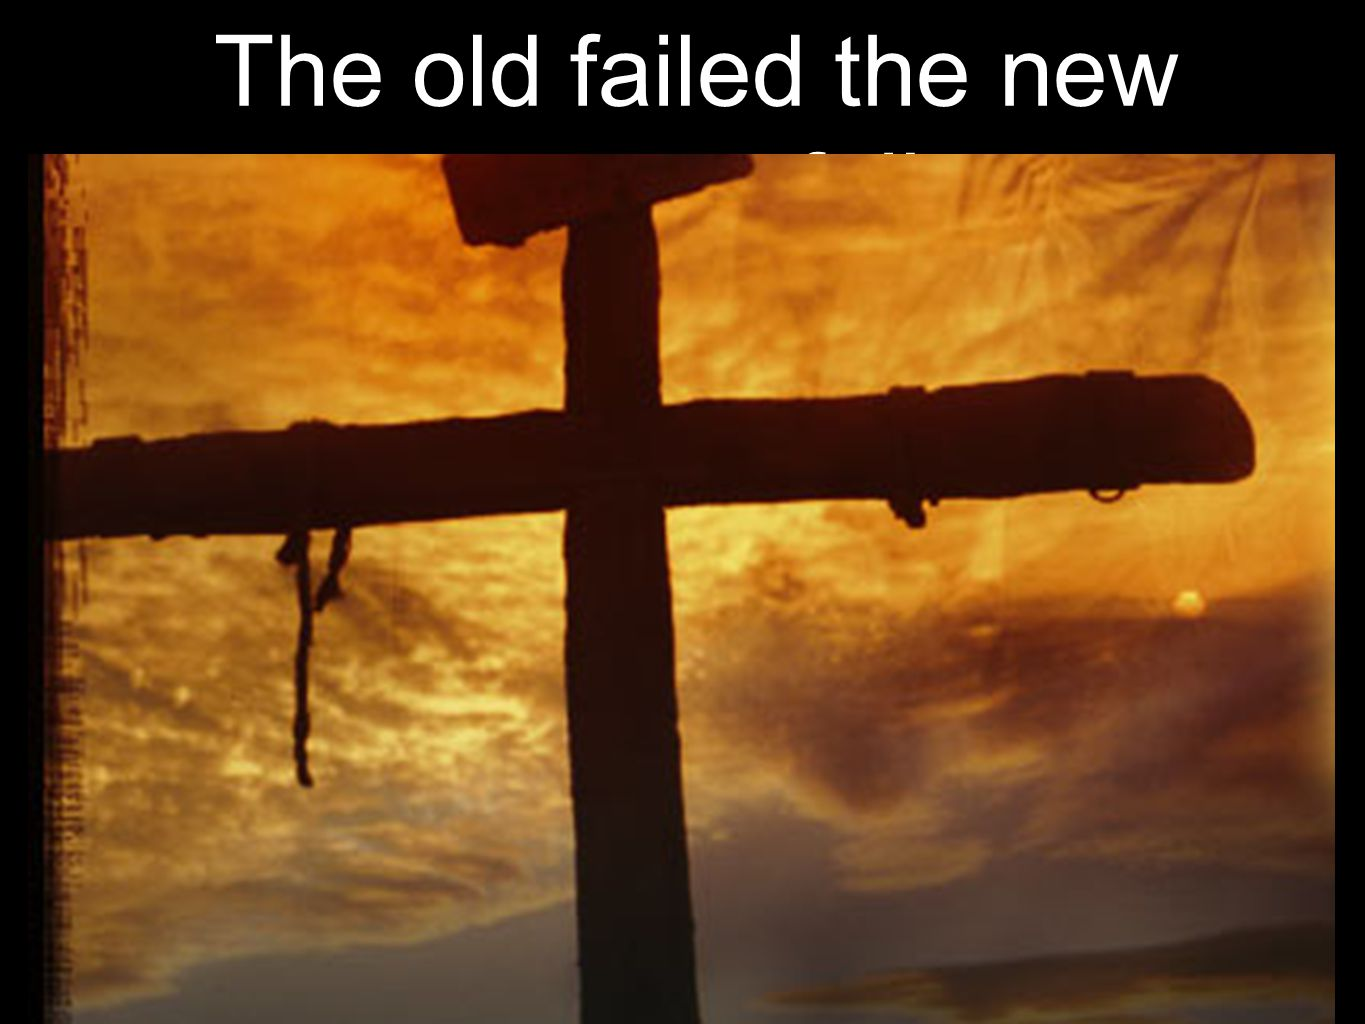 The old failed the new cannot fail